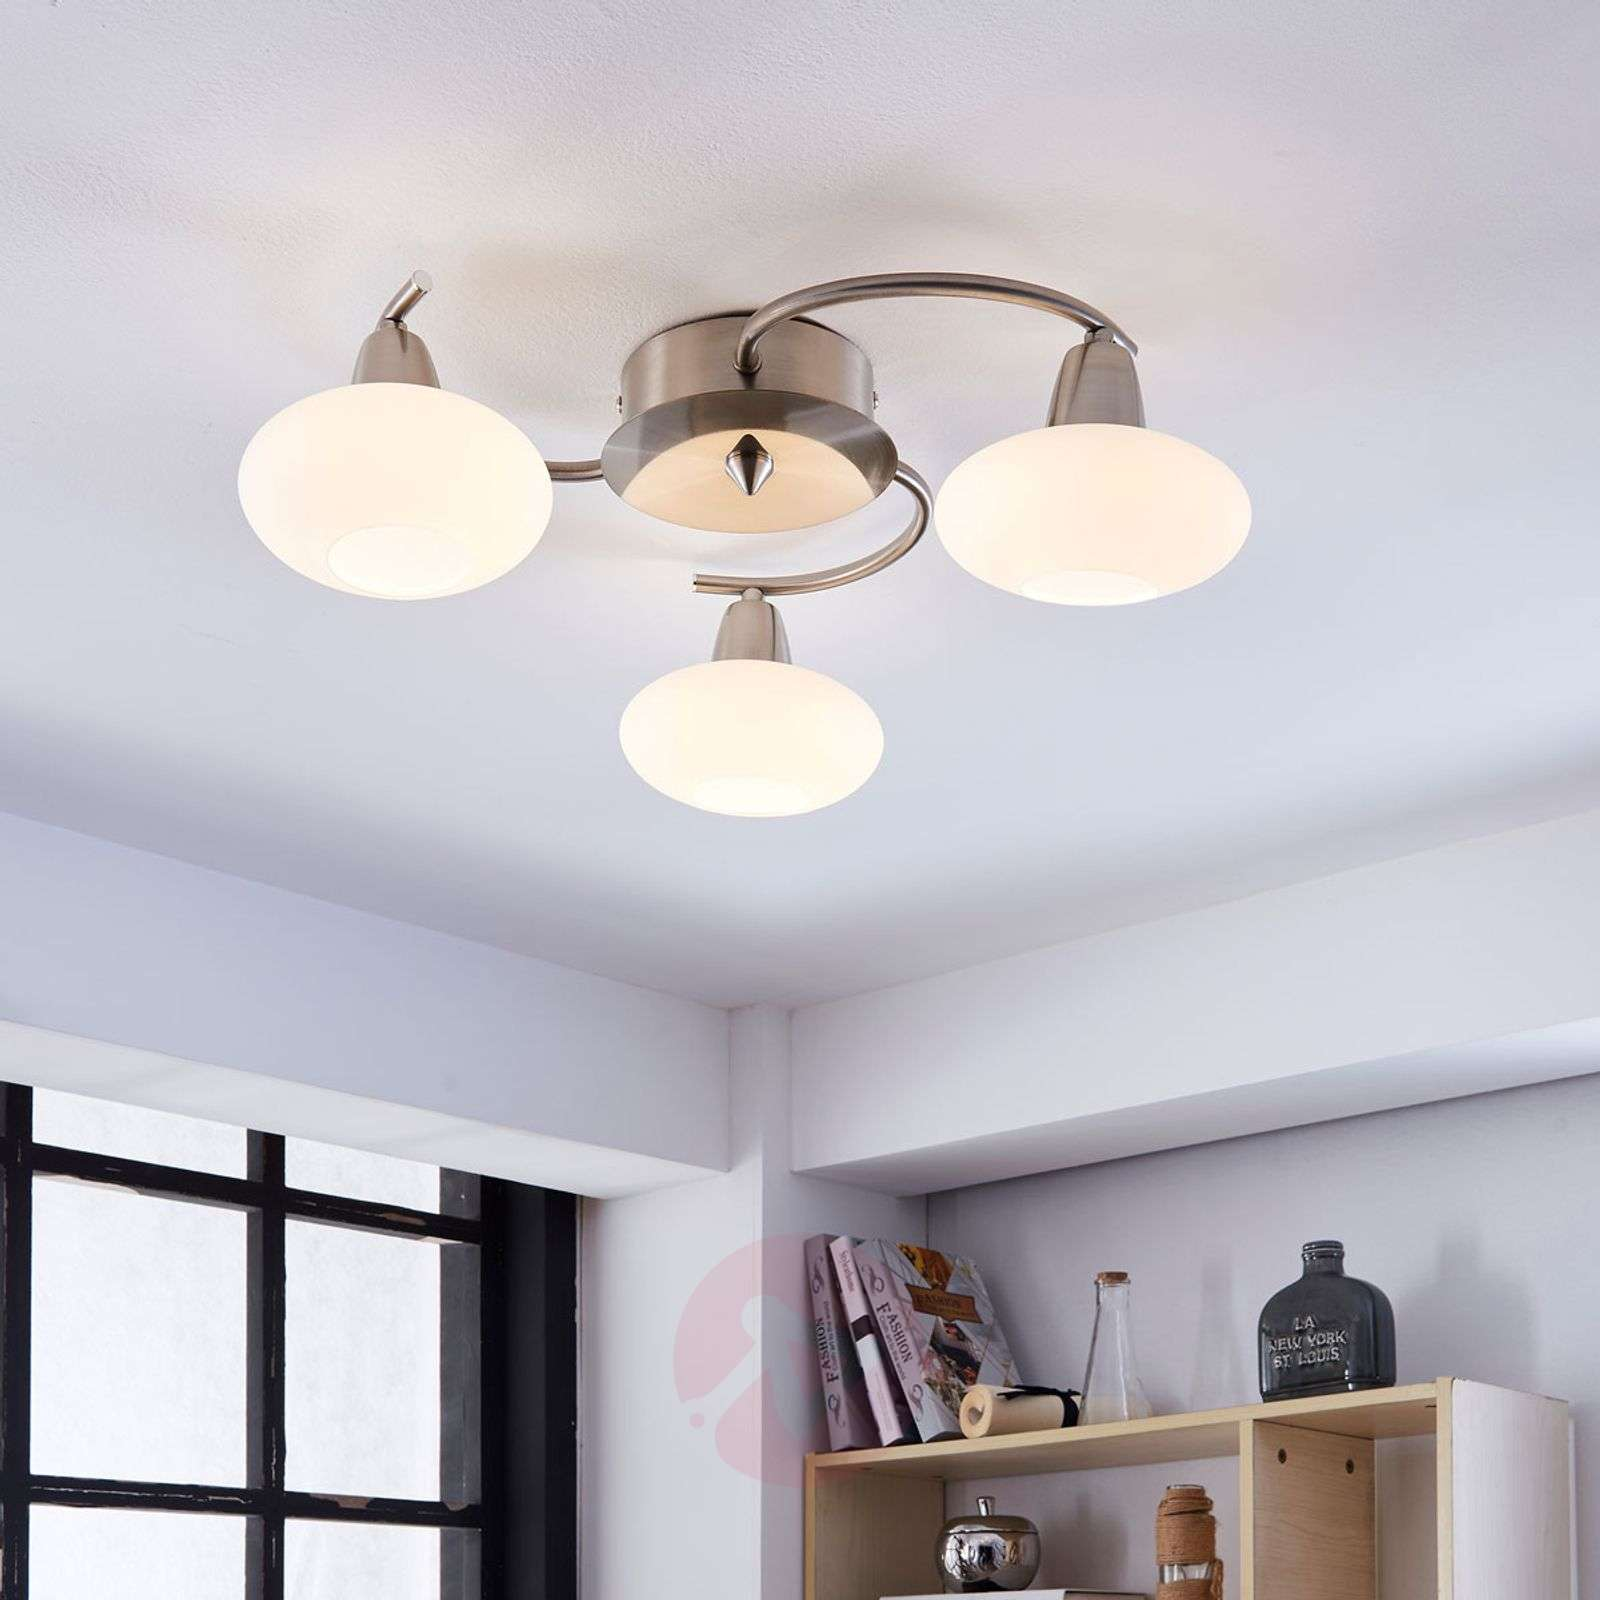 3-light LED ceiling light Espen, matt nickel-9620546-02